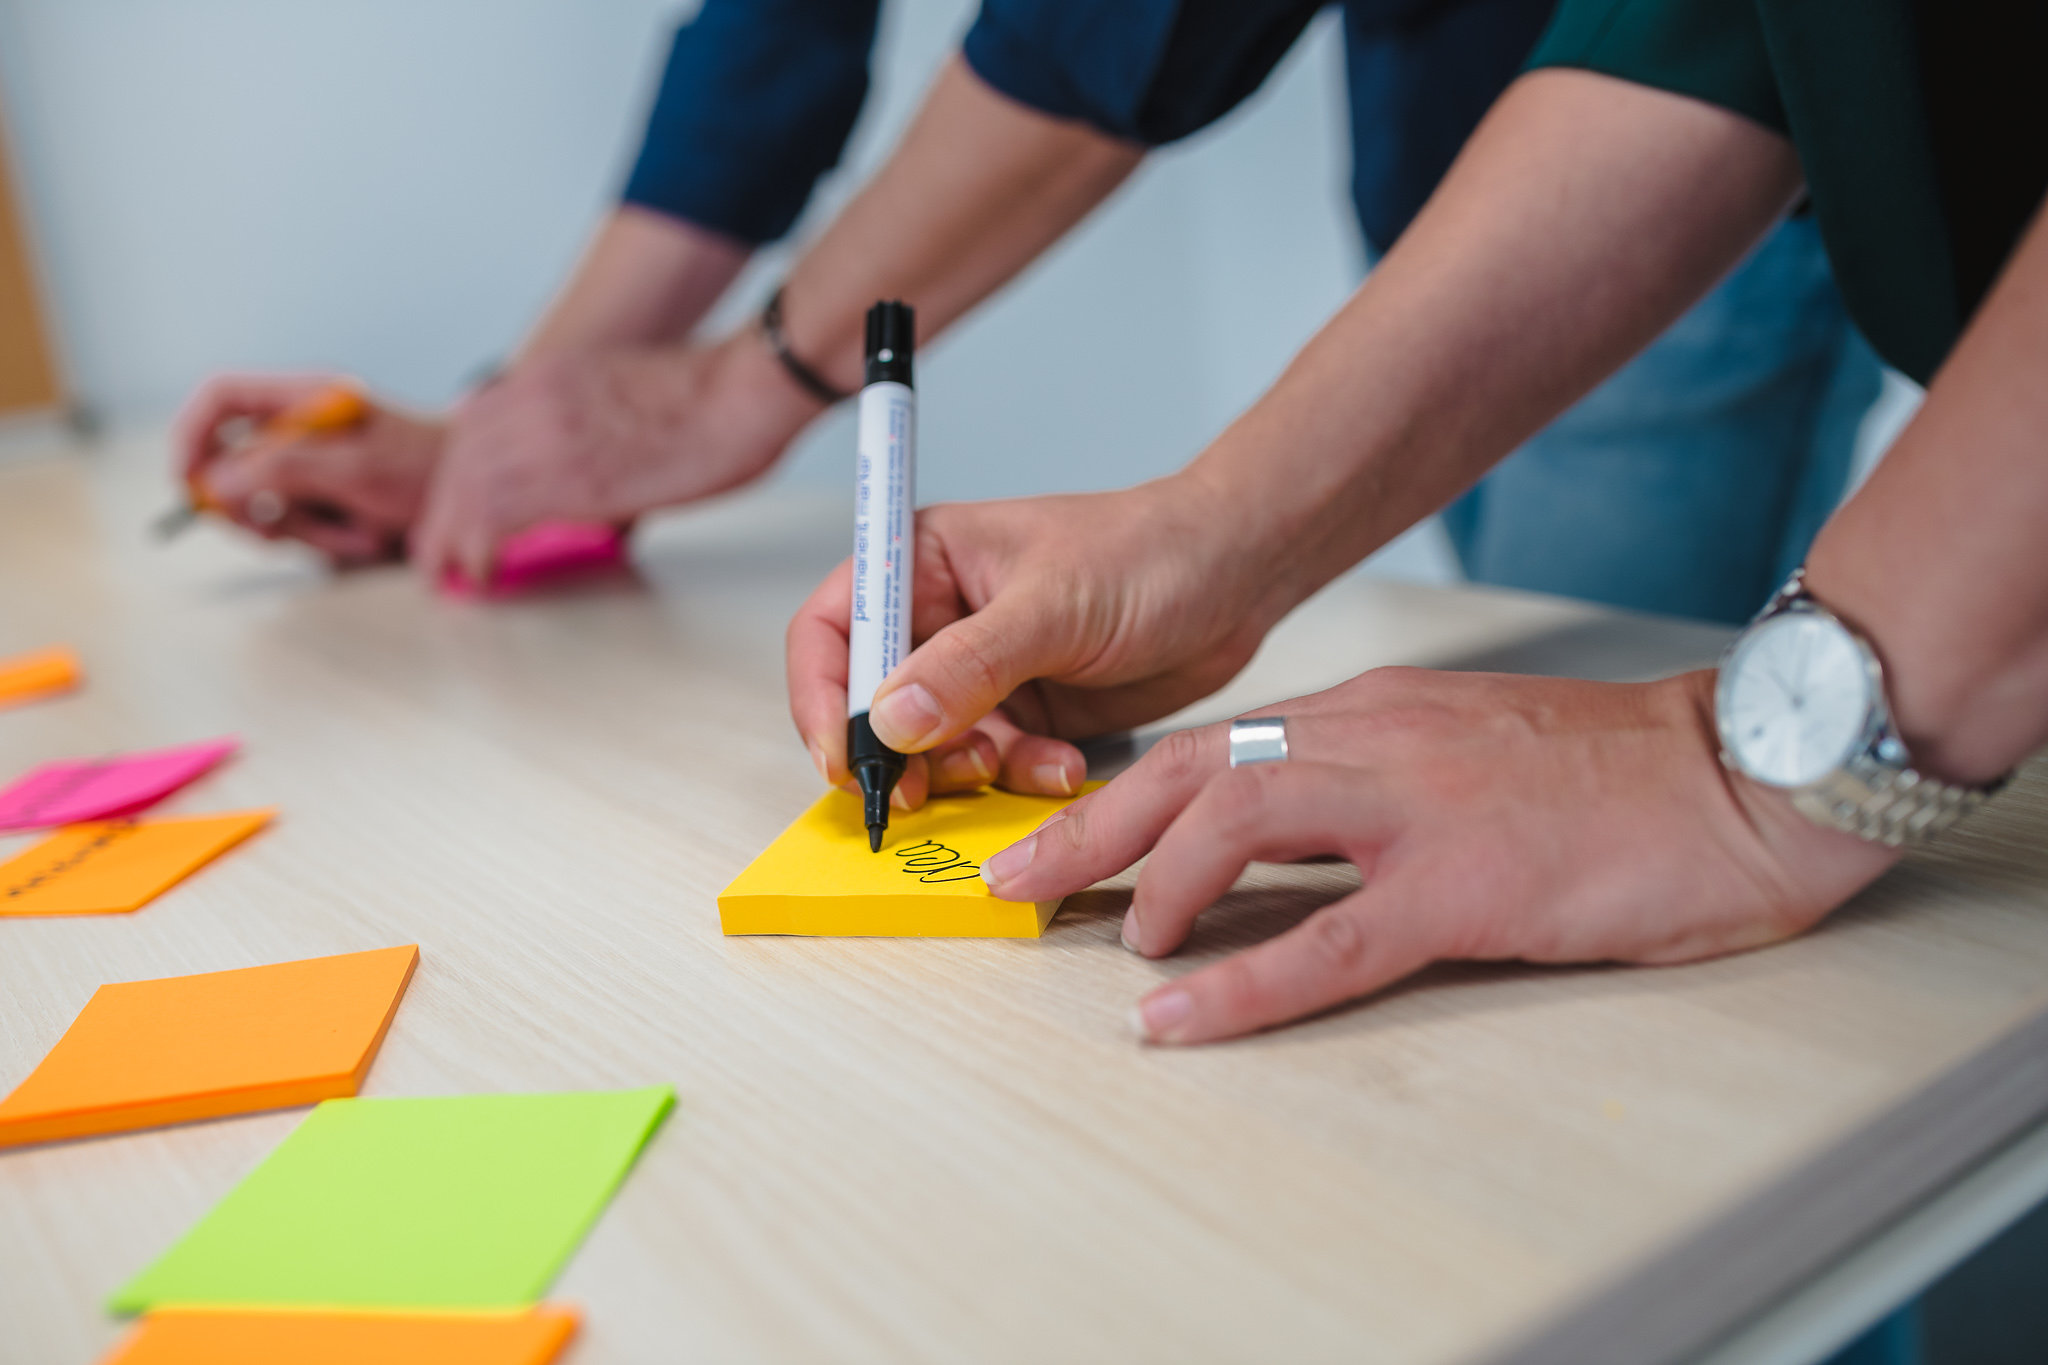 Home - Prototyping Work - Your way to the Future of Work